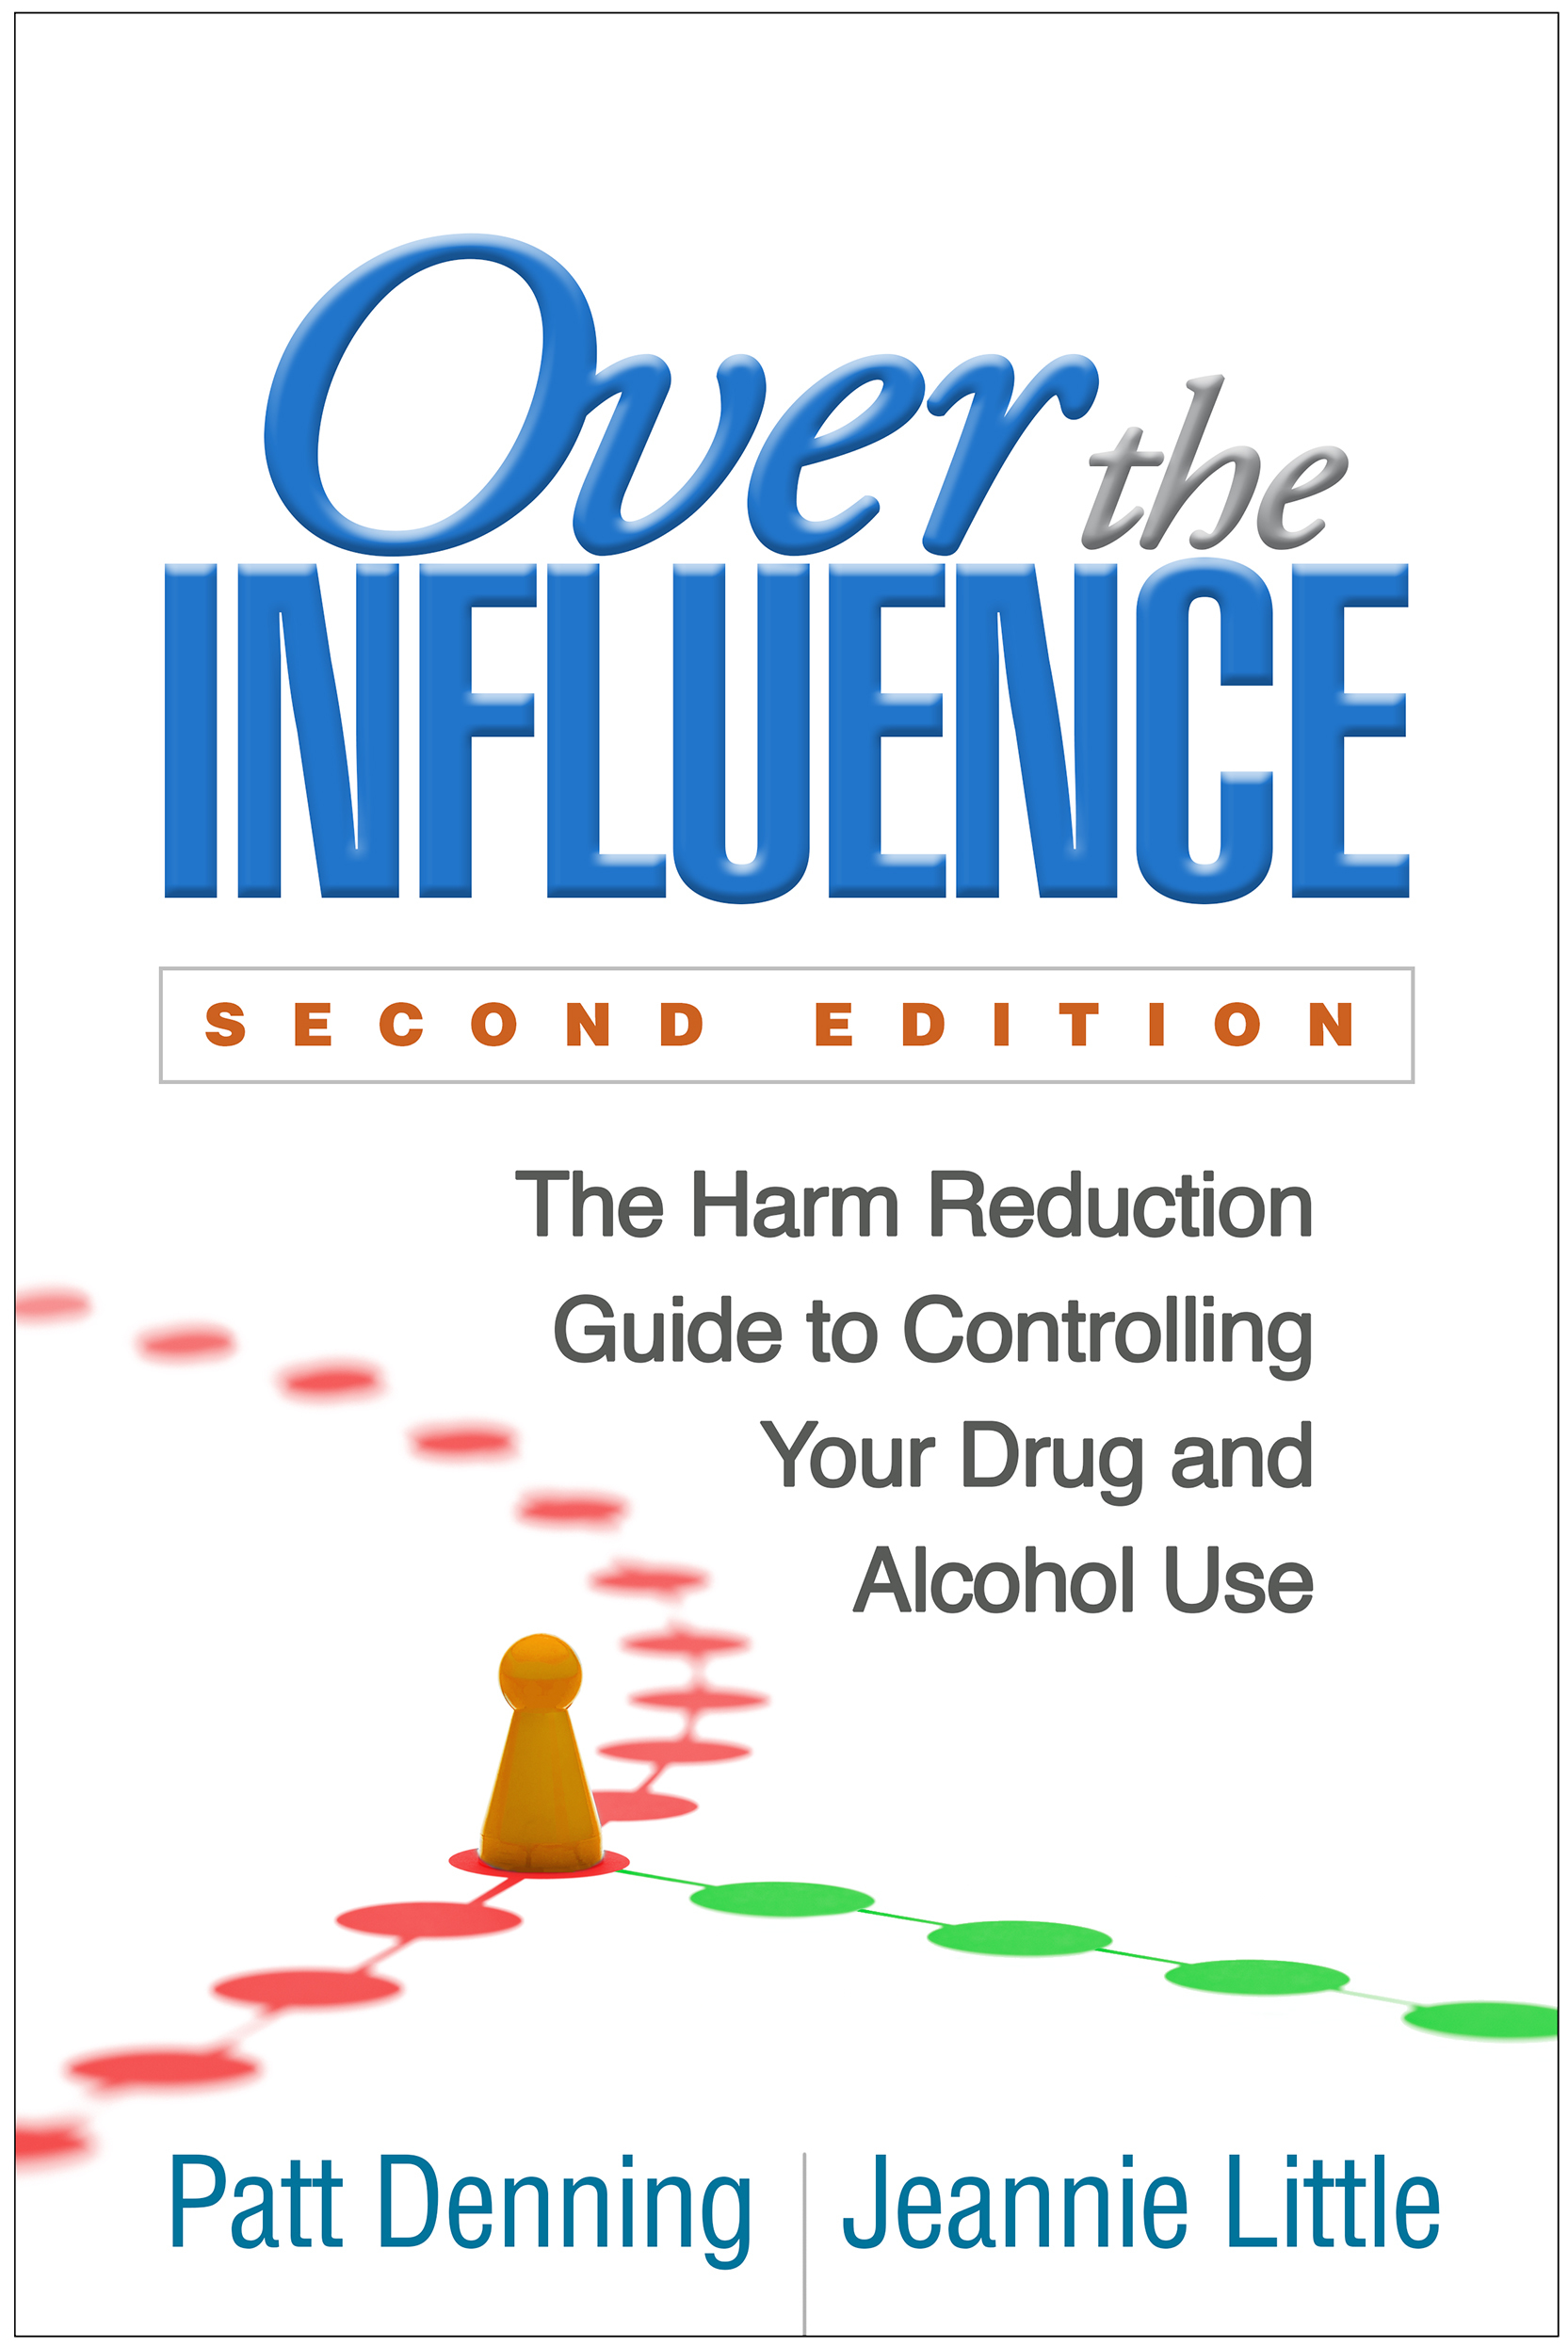 Over the Influence, Second Edition The Harm Reduction Guide to Controlling Your Drug and Alcohol Use, 2nd edition